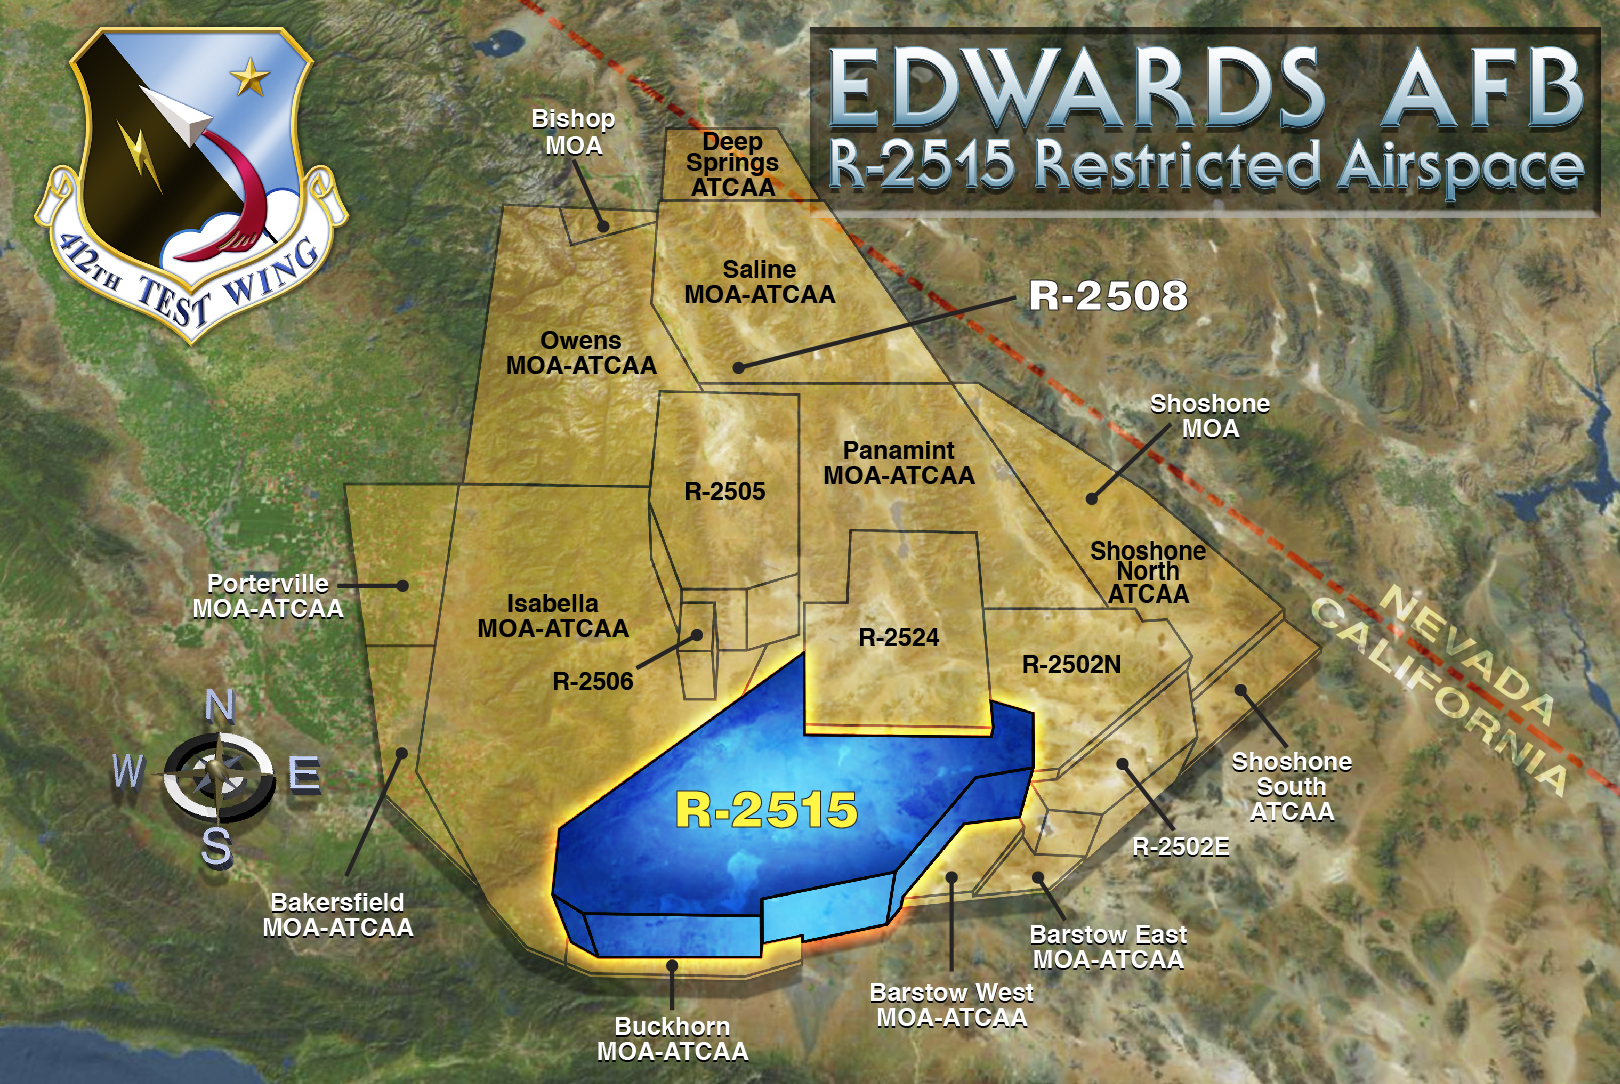 R Airspace - Edwards afb map